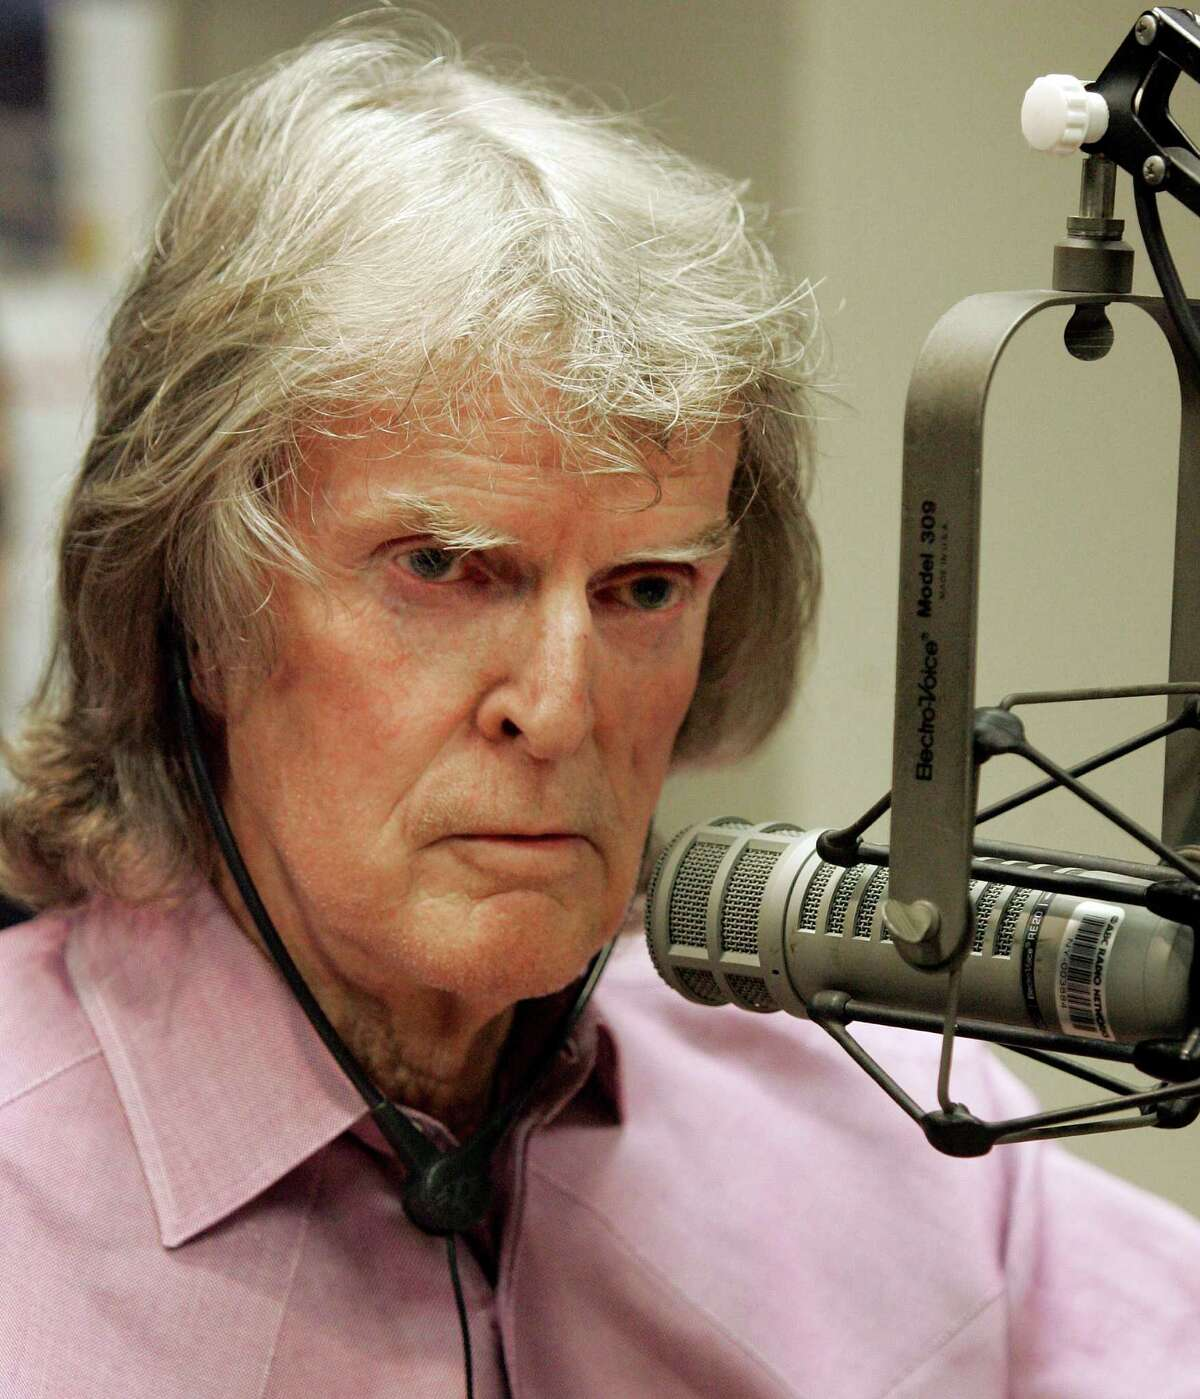 **FILE** Radio personality Don Imus appears on Rev. Al Sharpton's radio show, in New York in this April 9, 2007, file photo. Two months after Imus' ignominious firing from his syndicated radio show at WFAN-AM, a variety of fill-ins have rolled through the revolving door at the station, but no successor has been chosen. (AP Photo/Richard Drew, File)